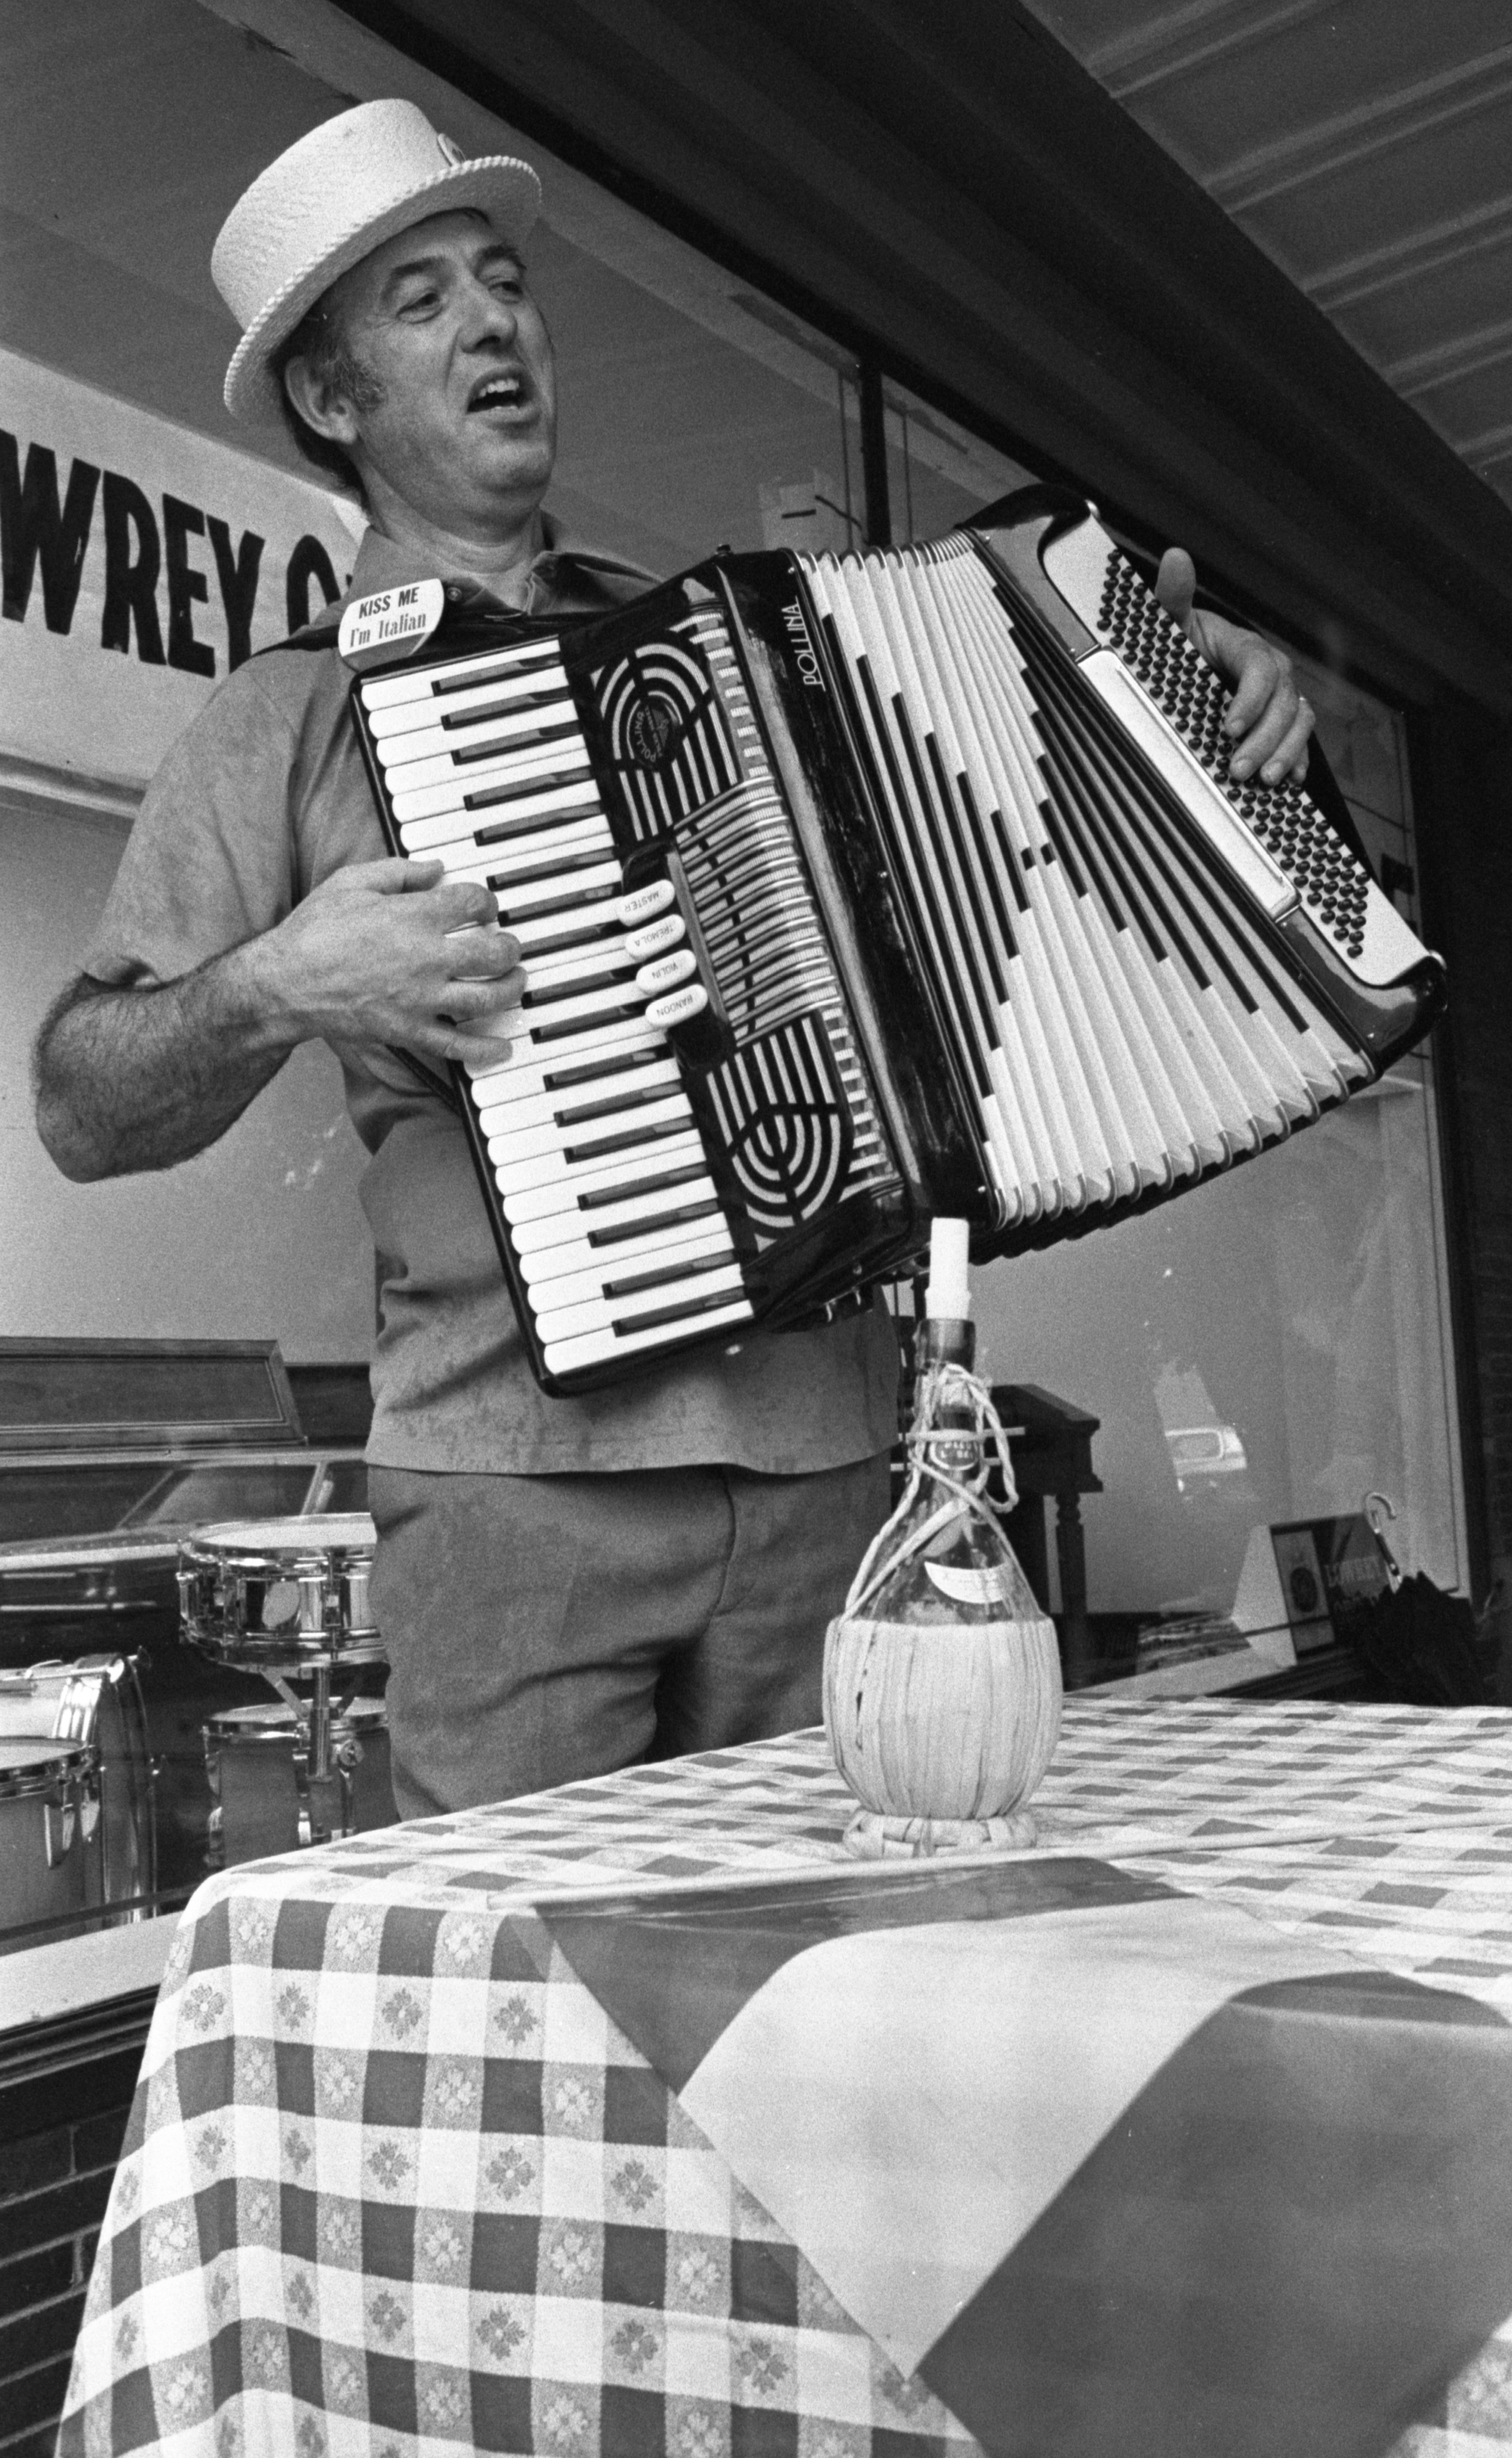 Al Galardi Plays His Accordion For The Italian Booth At The Ann Arbor Ethnic Fair, September 1975 image